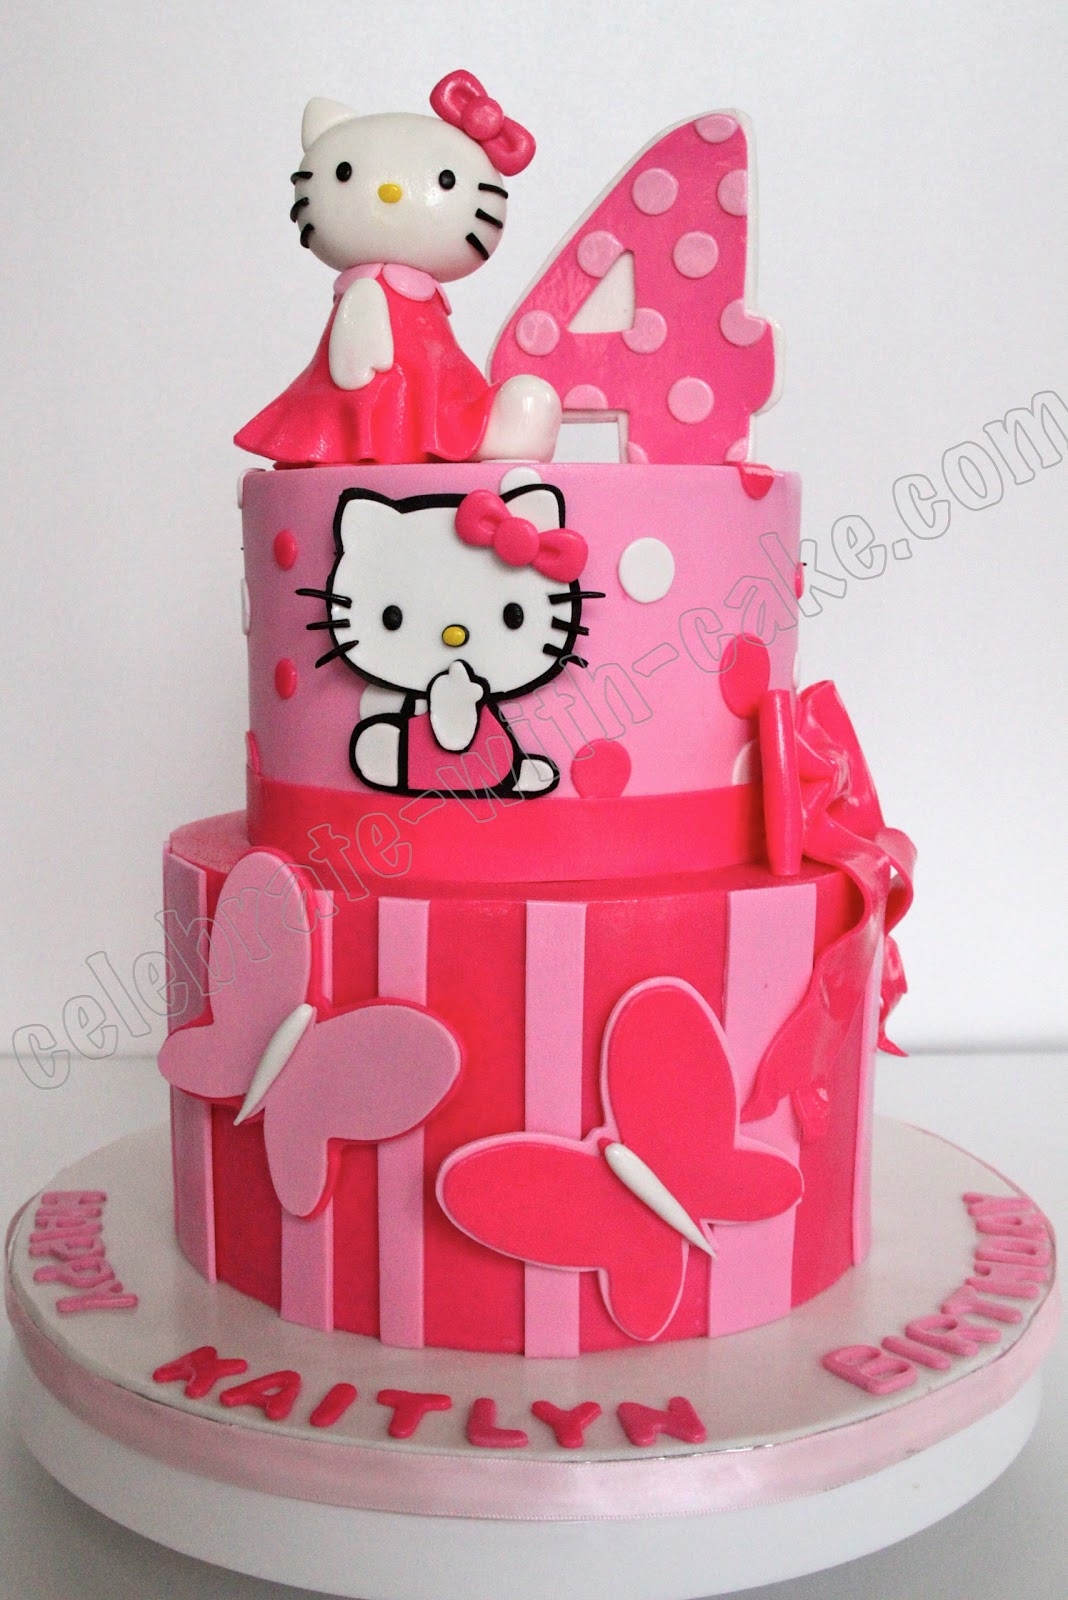 Birthday Cake Pictures Hello Kitty : torta kitty on Pinterest Hello Kitty, Hello Kitty Cake ...